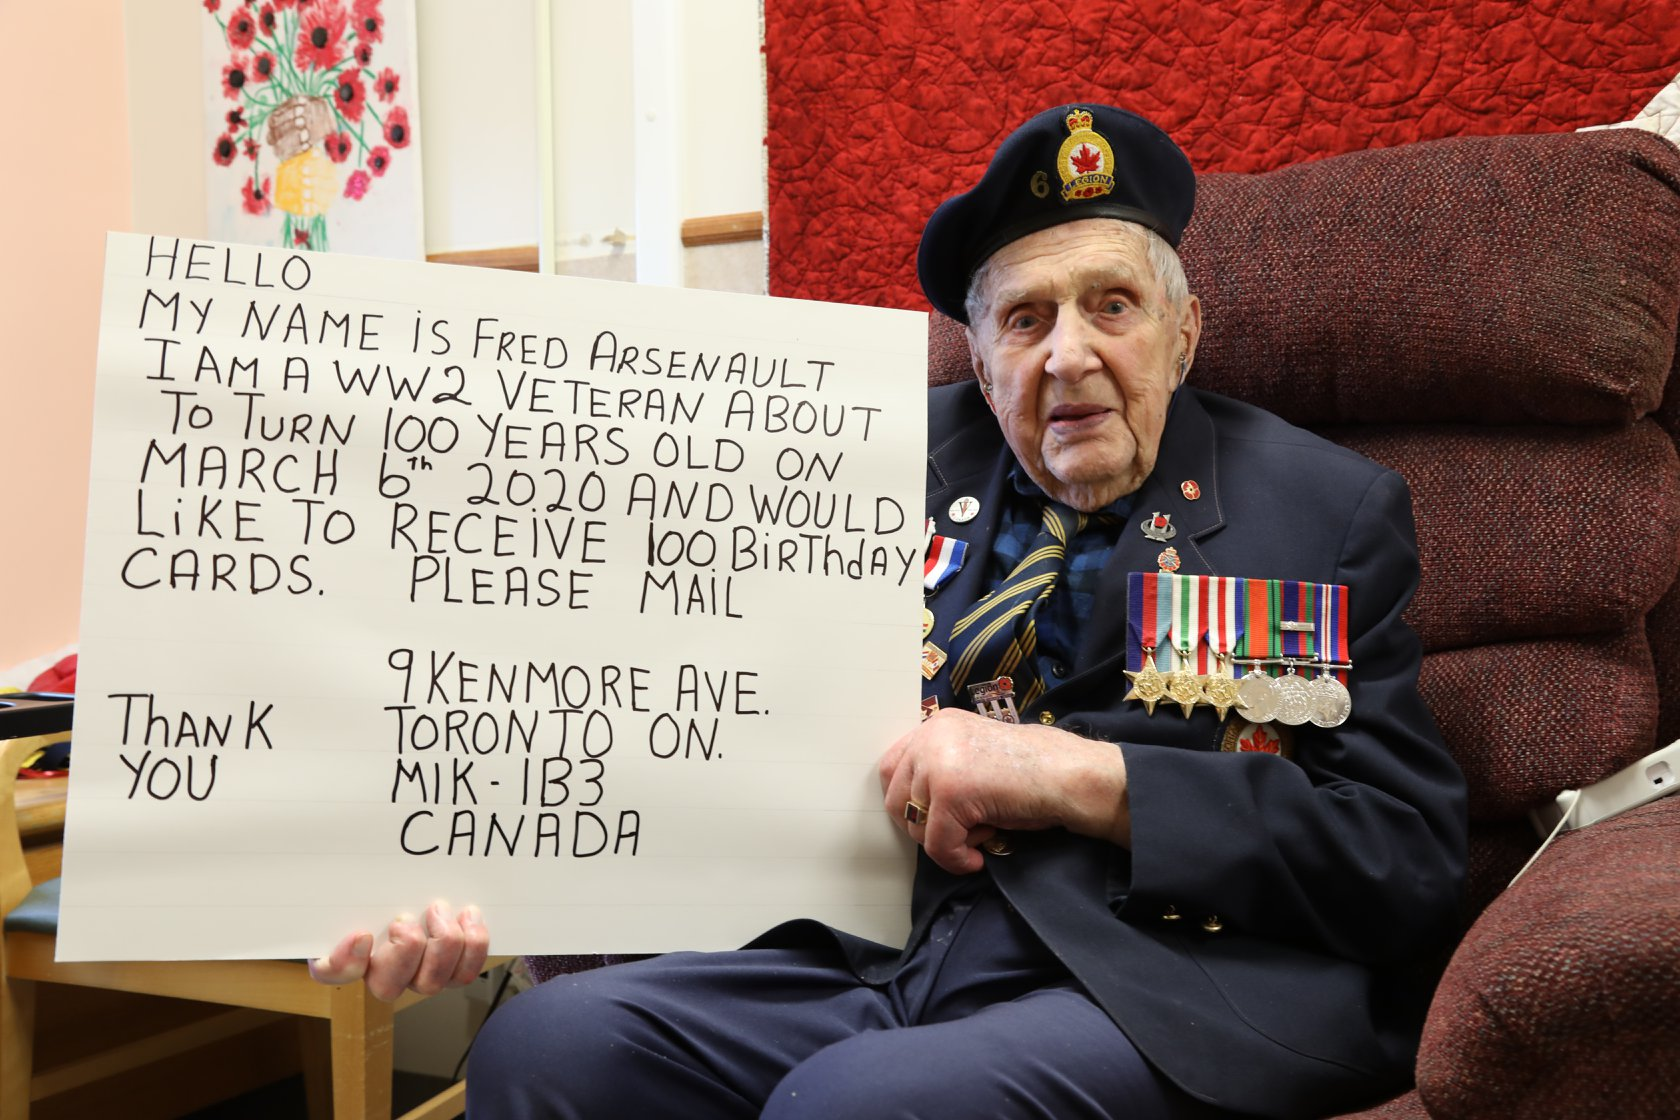 Second World War Vet Asks To Receive Cards For 100th